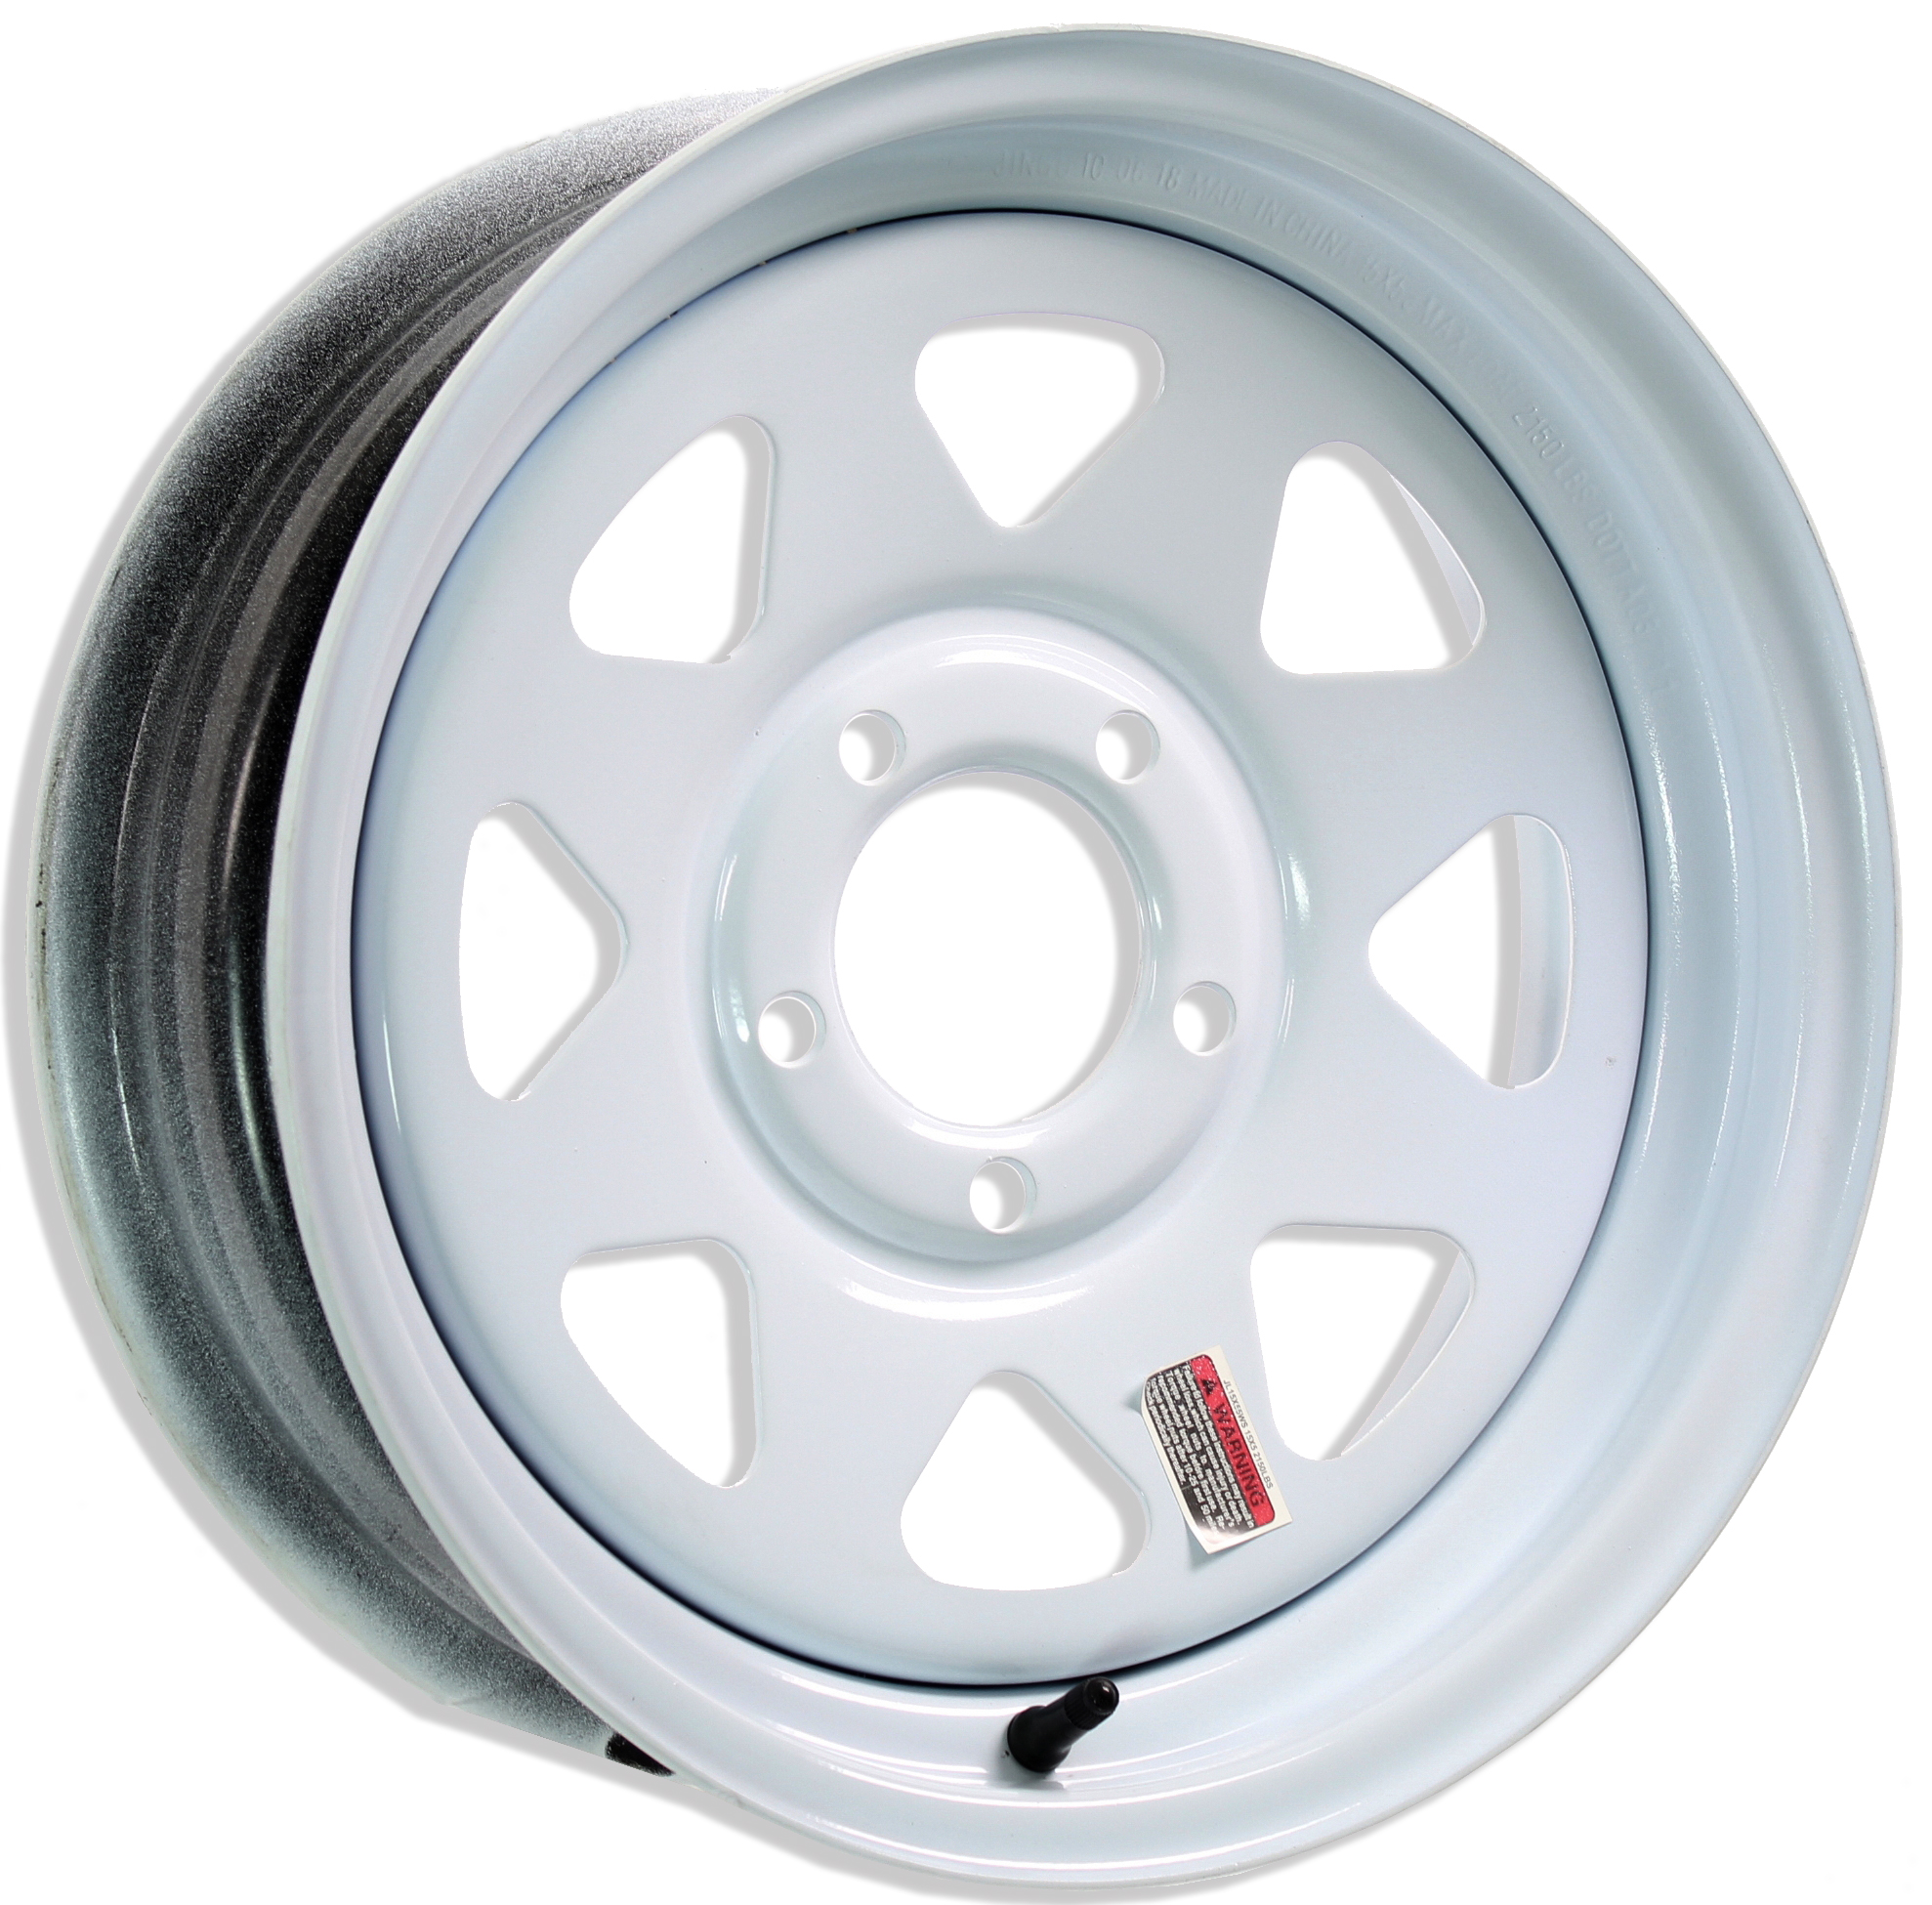 15x5 5-4.5 White Spoke Steel Trailer Wheel Image